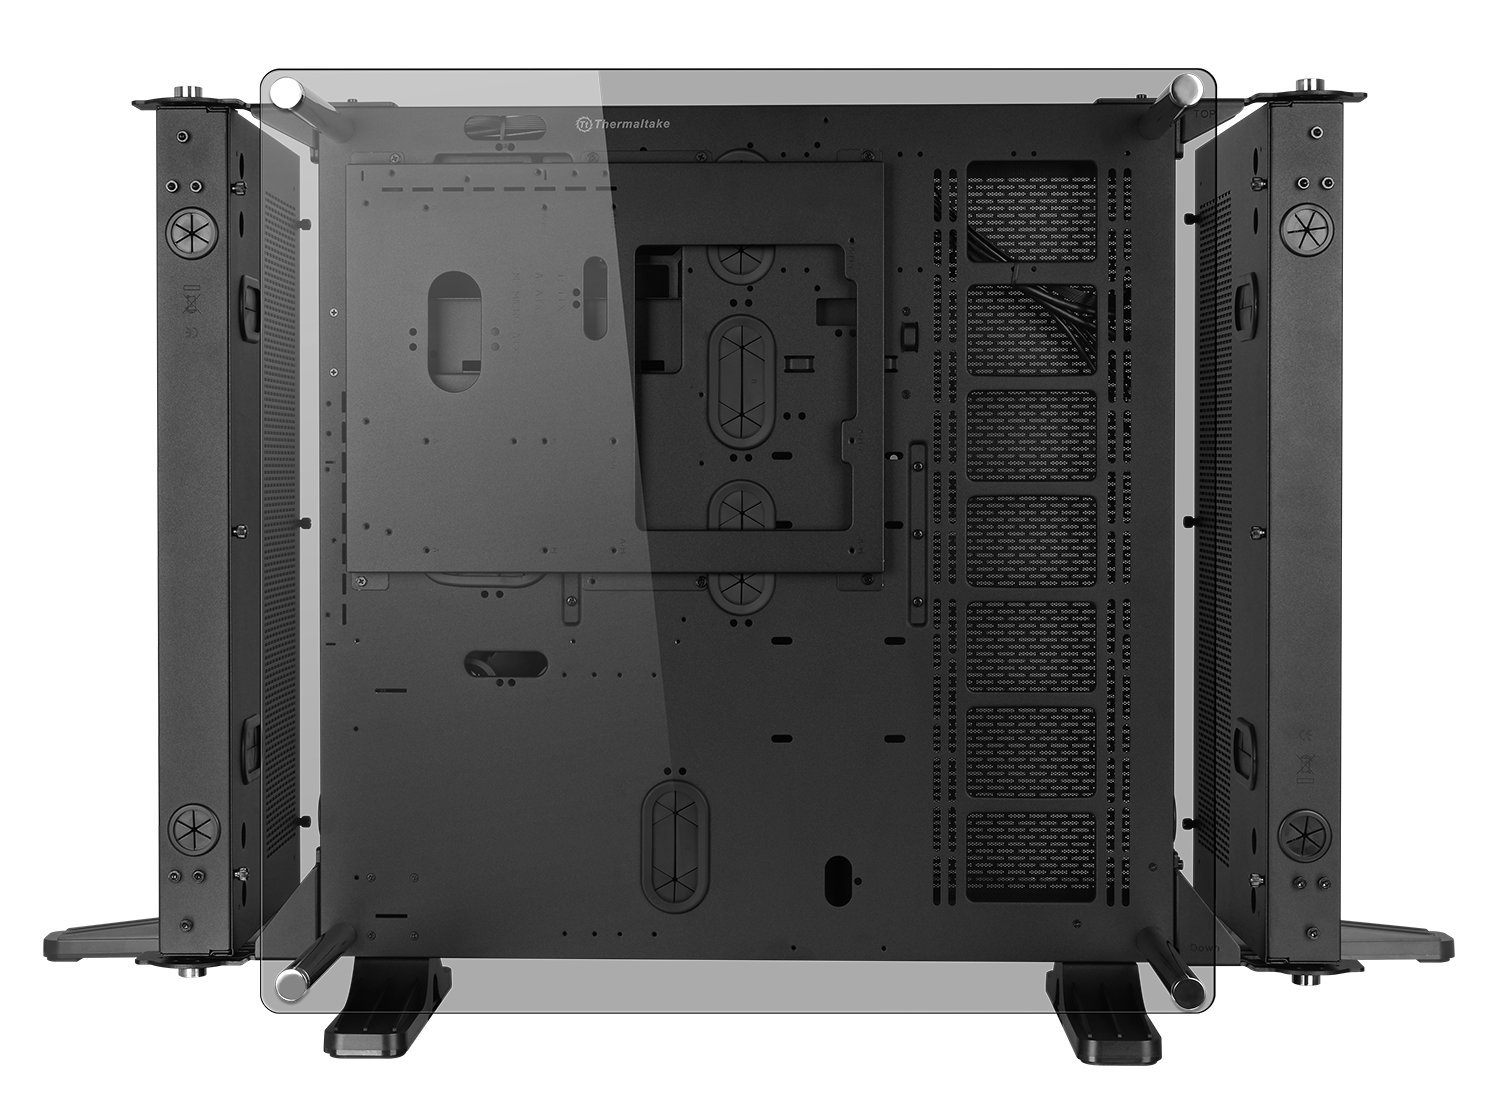 Thermaltake Core P7 Tempered Glass Edition E-ATX Open Frame Panoramic Viewing Tt LCS Certified Gaming Computer Chassis CA-1I2-00F1WN-00 by Thermaltake (Image #2)